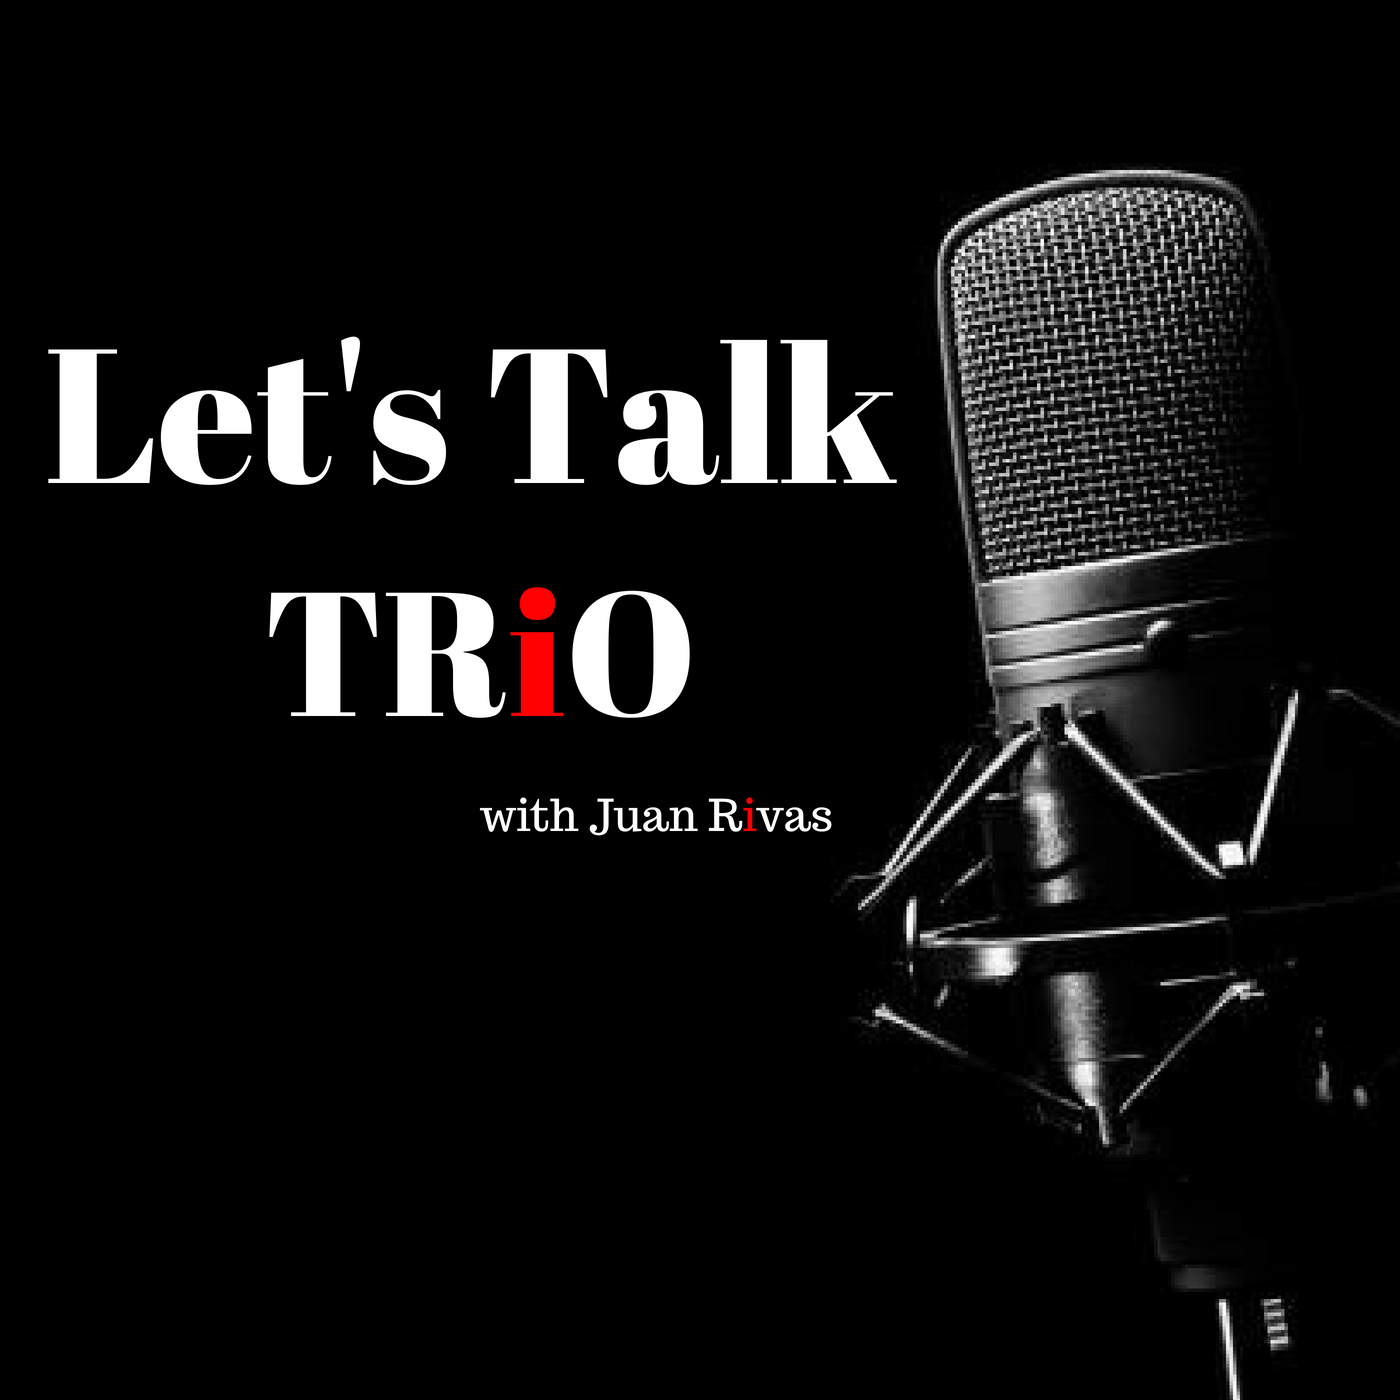 Let's Talk TRIO